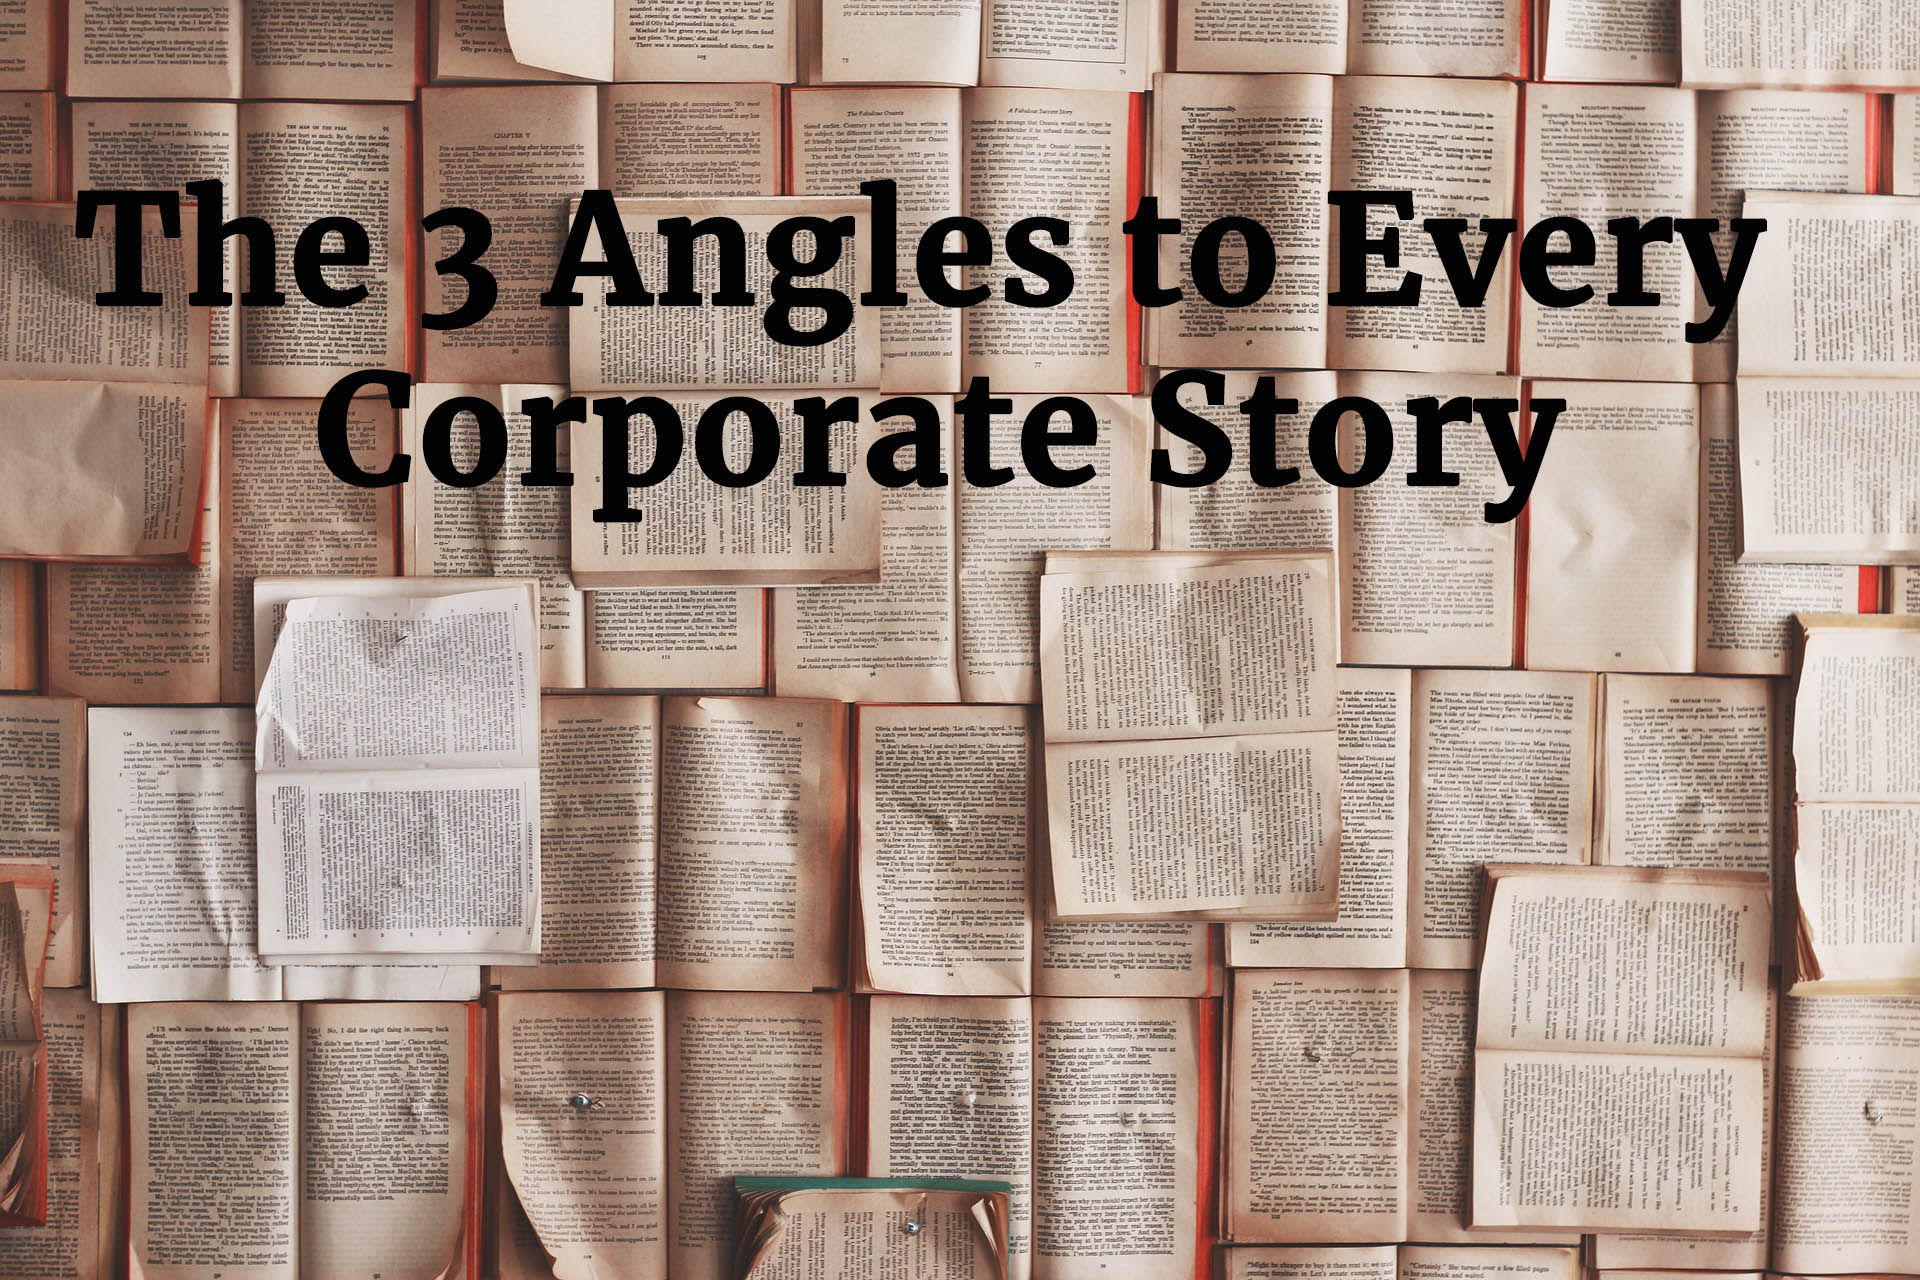 The 3 Angles to Every Corporate Story